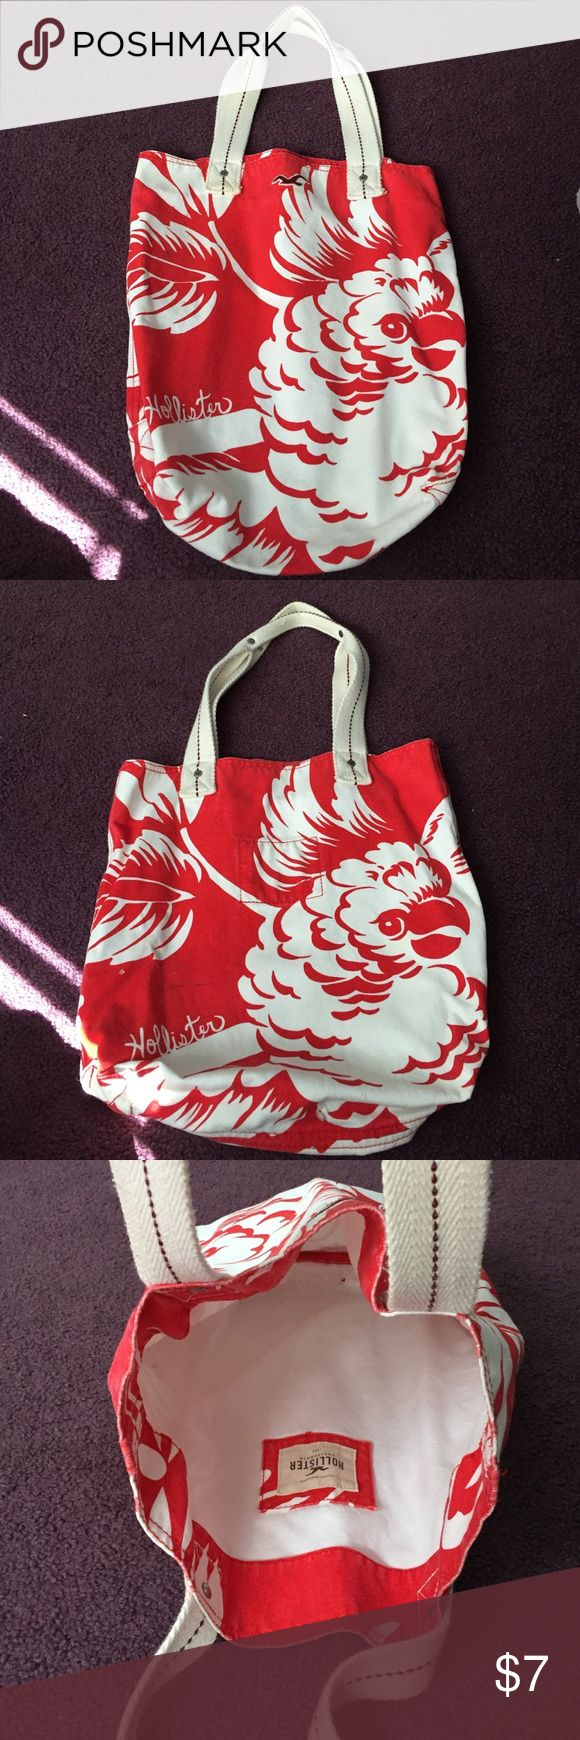 Hollister Tote Bag Hollister Tote Bag Coral & White With Parrot Bird Hollister Bags Totes